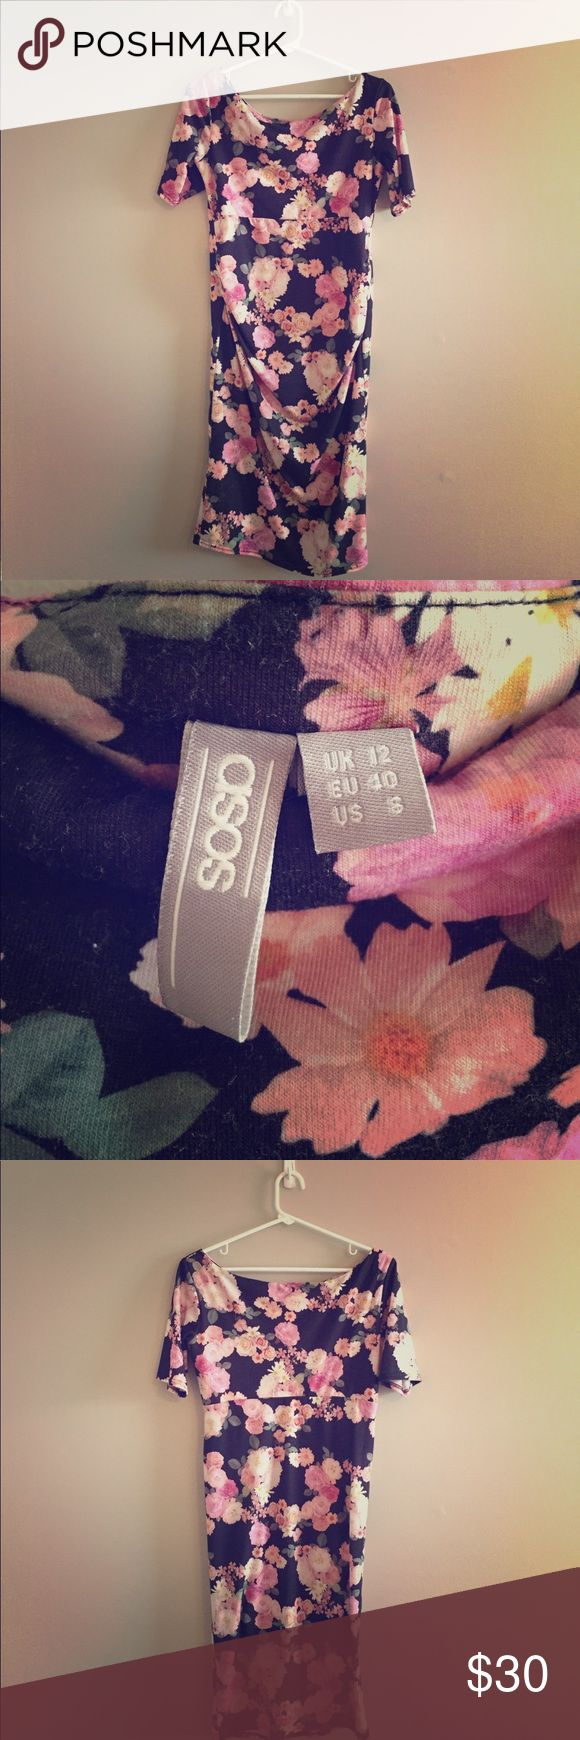 Selling this Asos Floral Maternity Dress on Poshmark! My username is: patricianelson. #shopmycloset #poshmark #fashion #shopping #style #forsale #ASOS Maternity #Dresses & Skirts